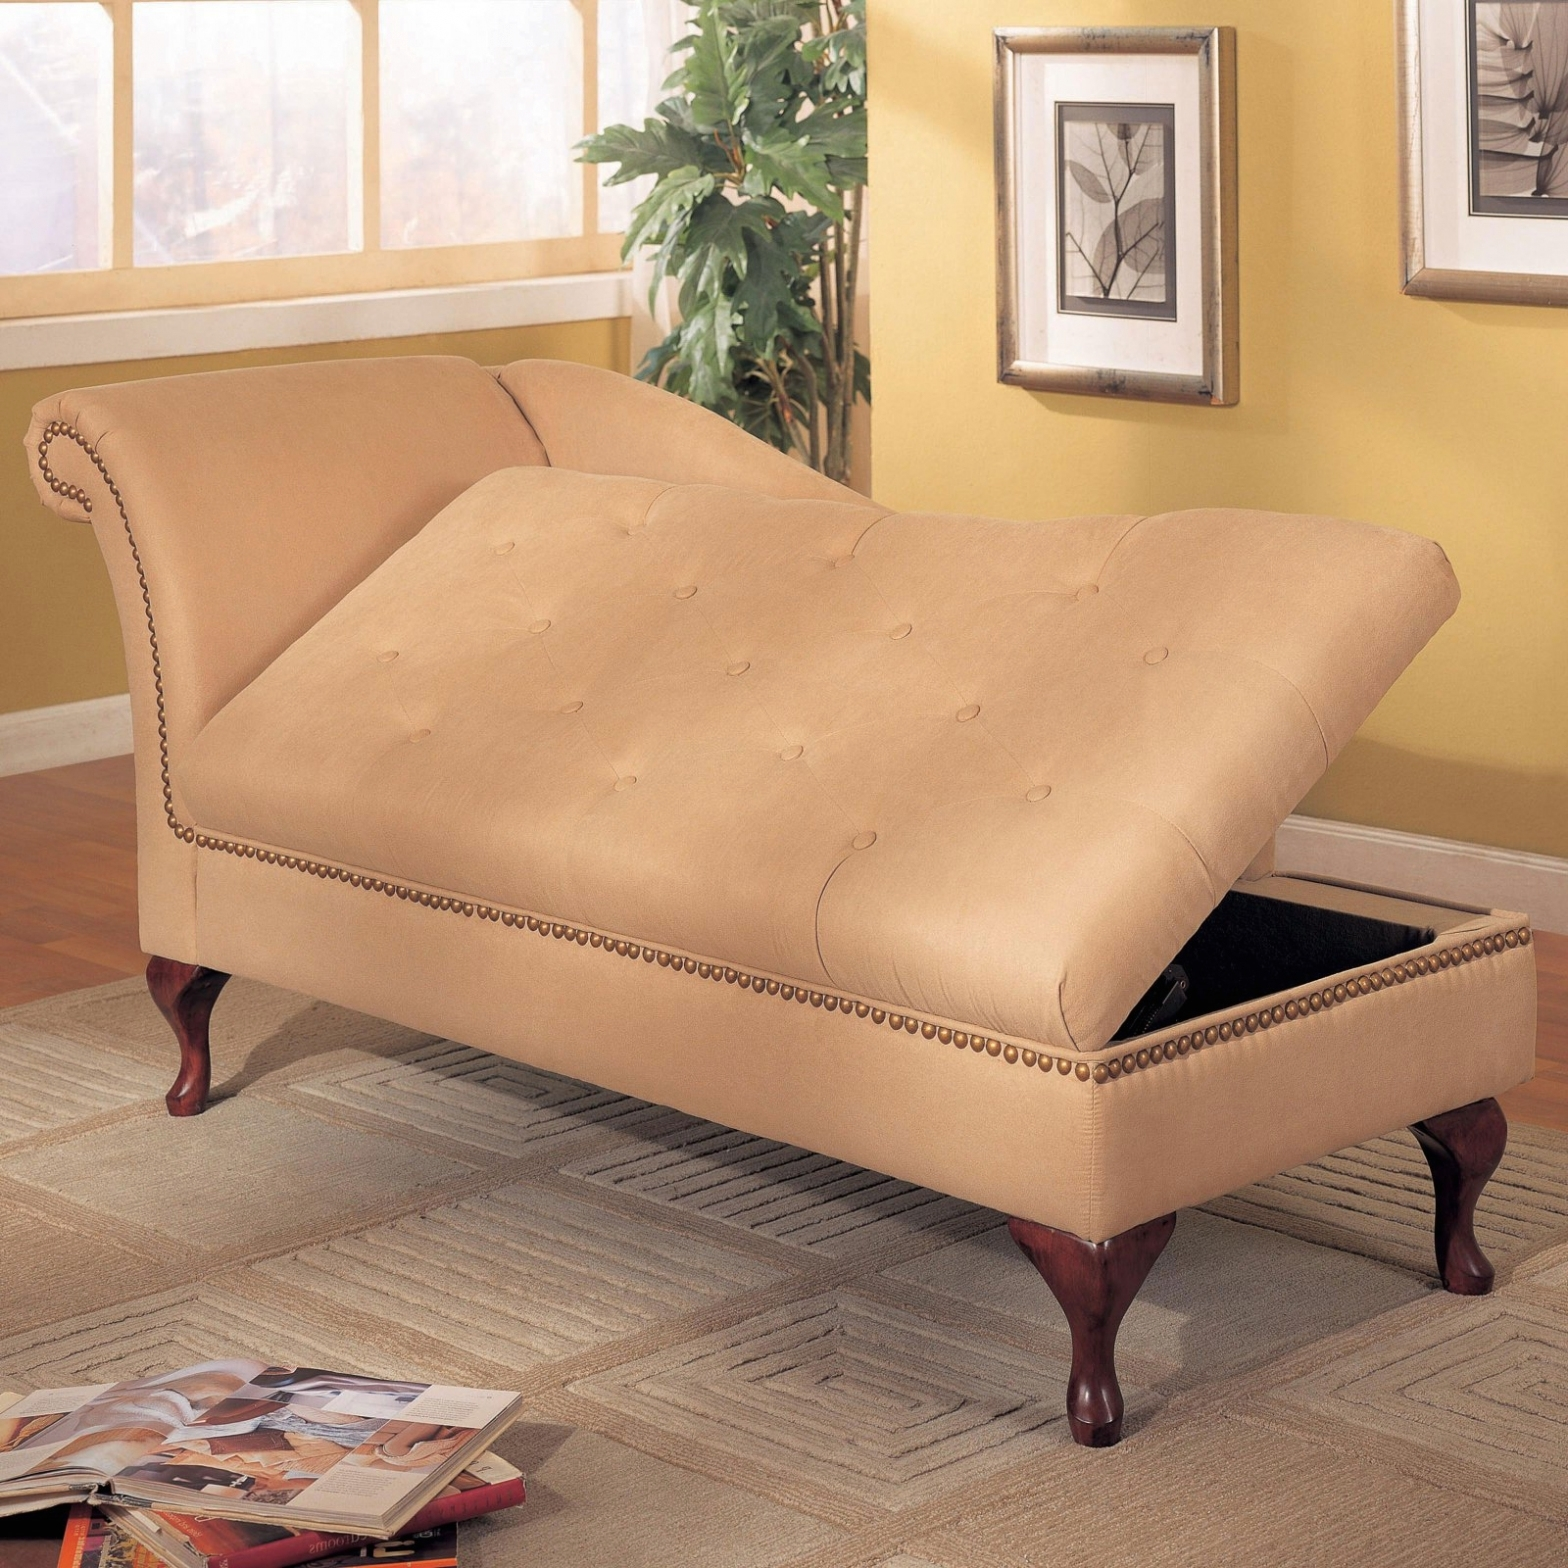 Small Chaise Lounge Chairs For Bedroom For Most Recently Released Home Decor: Small Bedroom Chaise Lounge Chairs • Lounge Chairs (View 11 of 15)